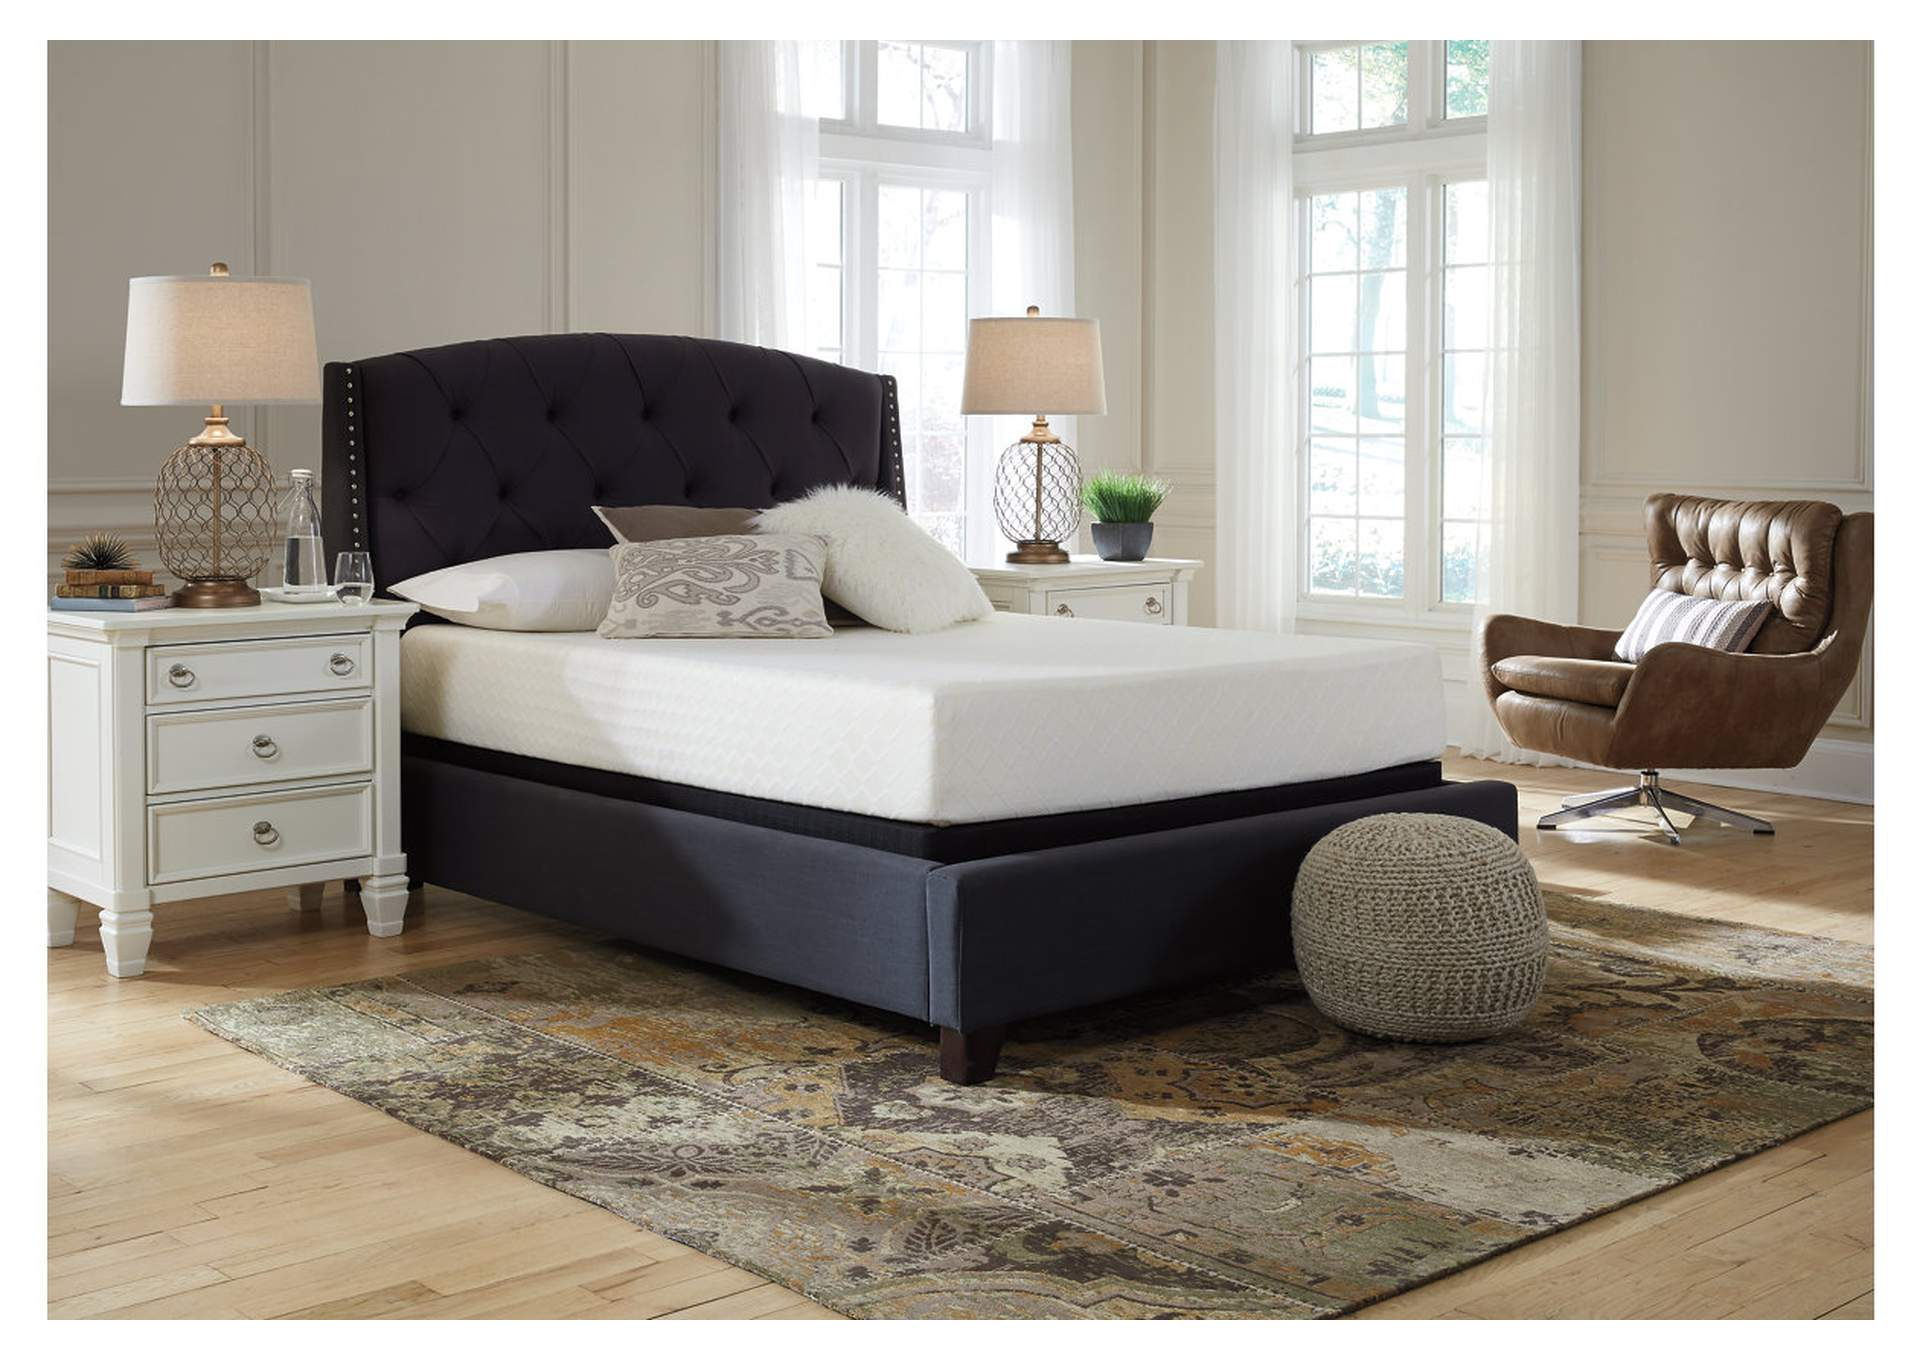 "Chime 10"" Memory Foam Full Mattress w/Grey Foundation,Sierra Sleep by Ashley"